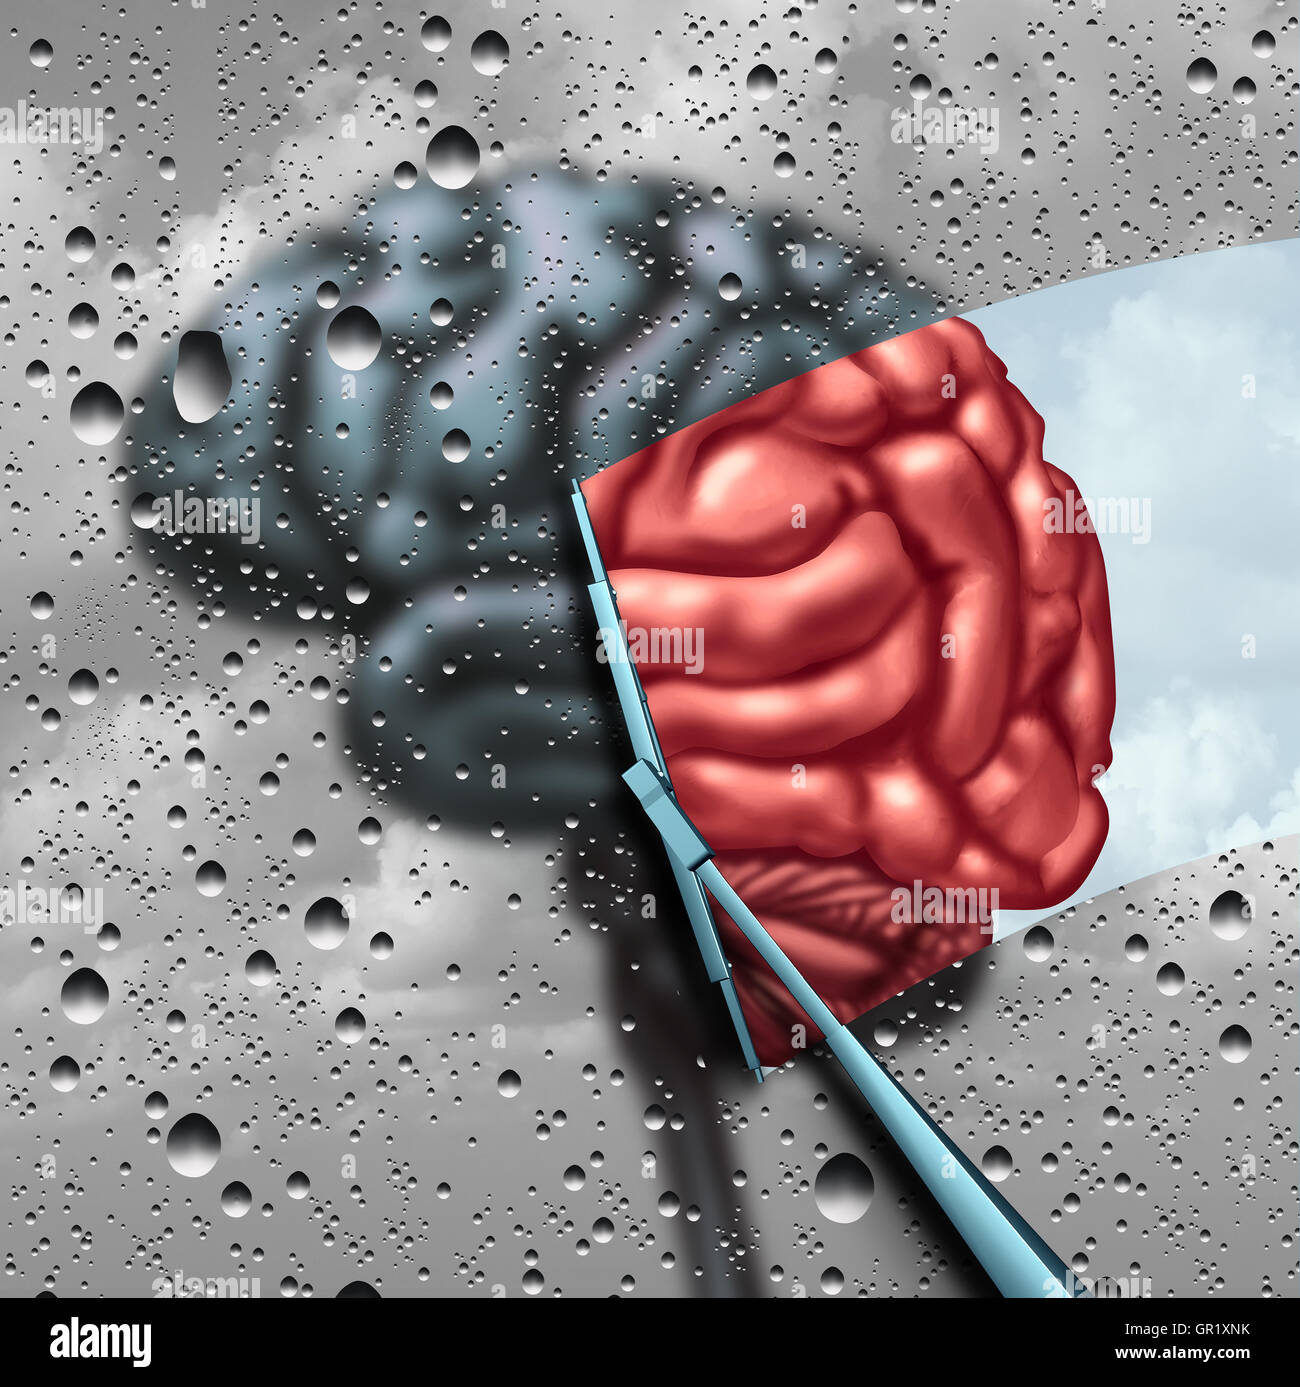 Dementia therapy and brain disease cure or mental health treatment concept as a blurry brain with drops on a window - Stock Image